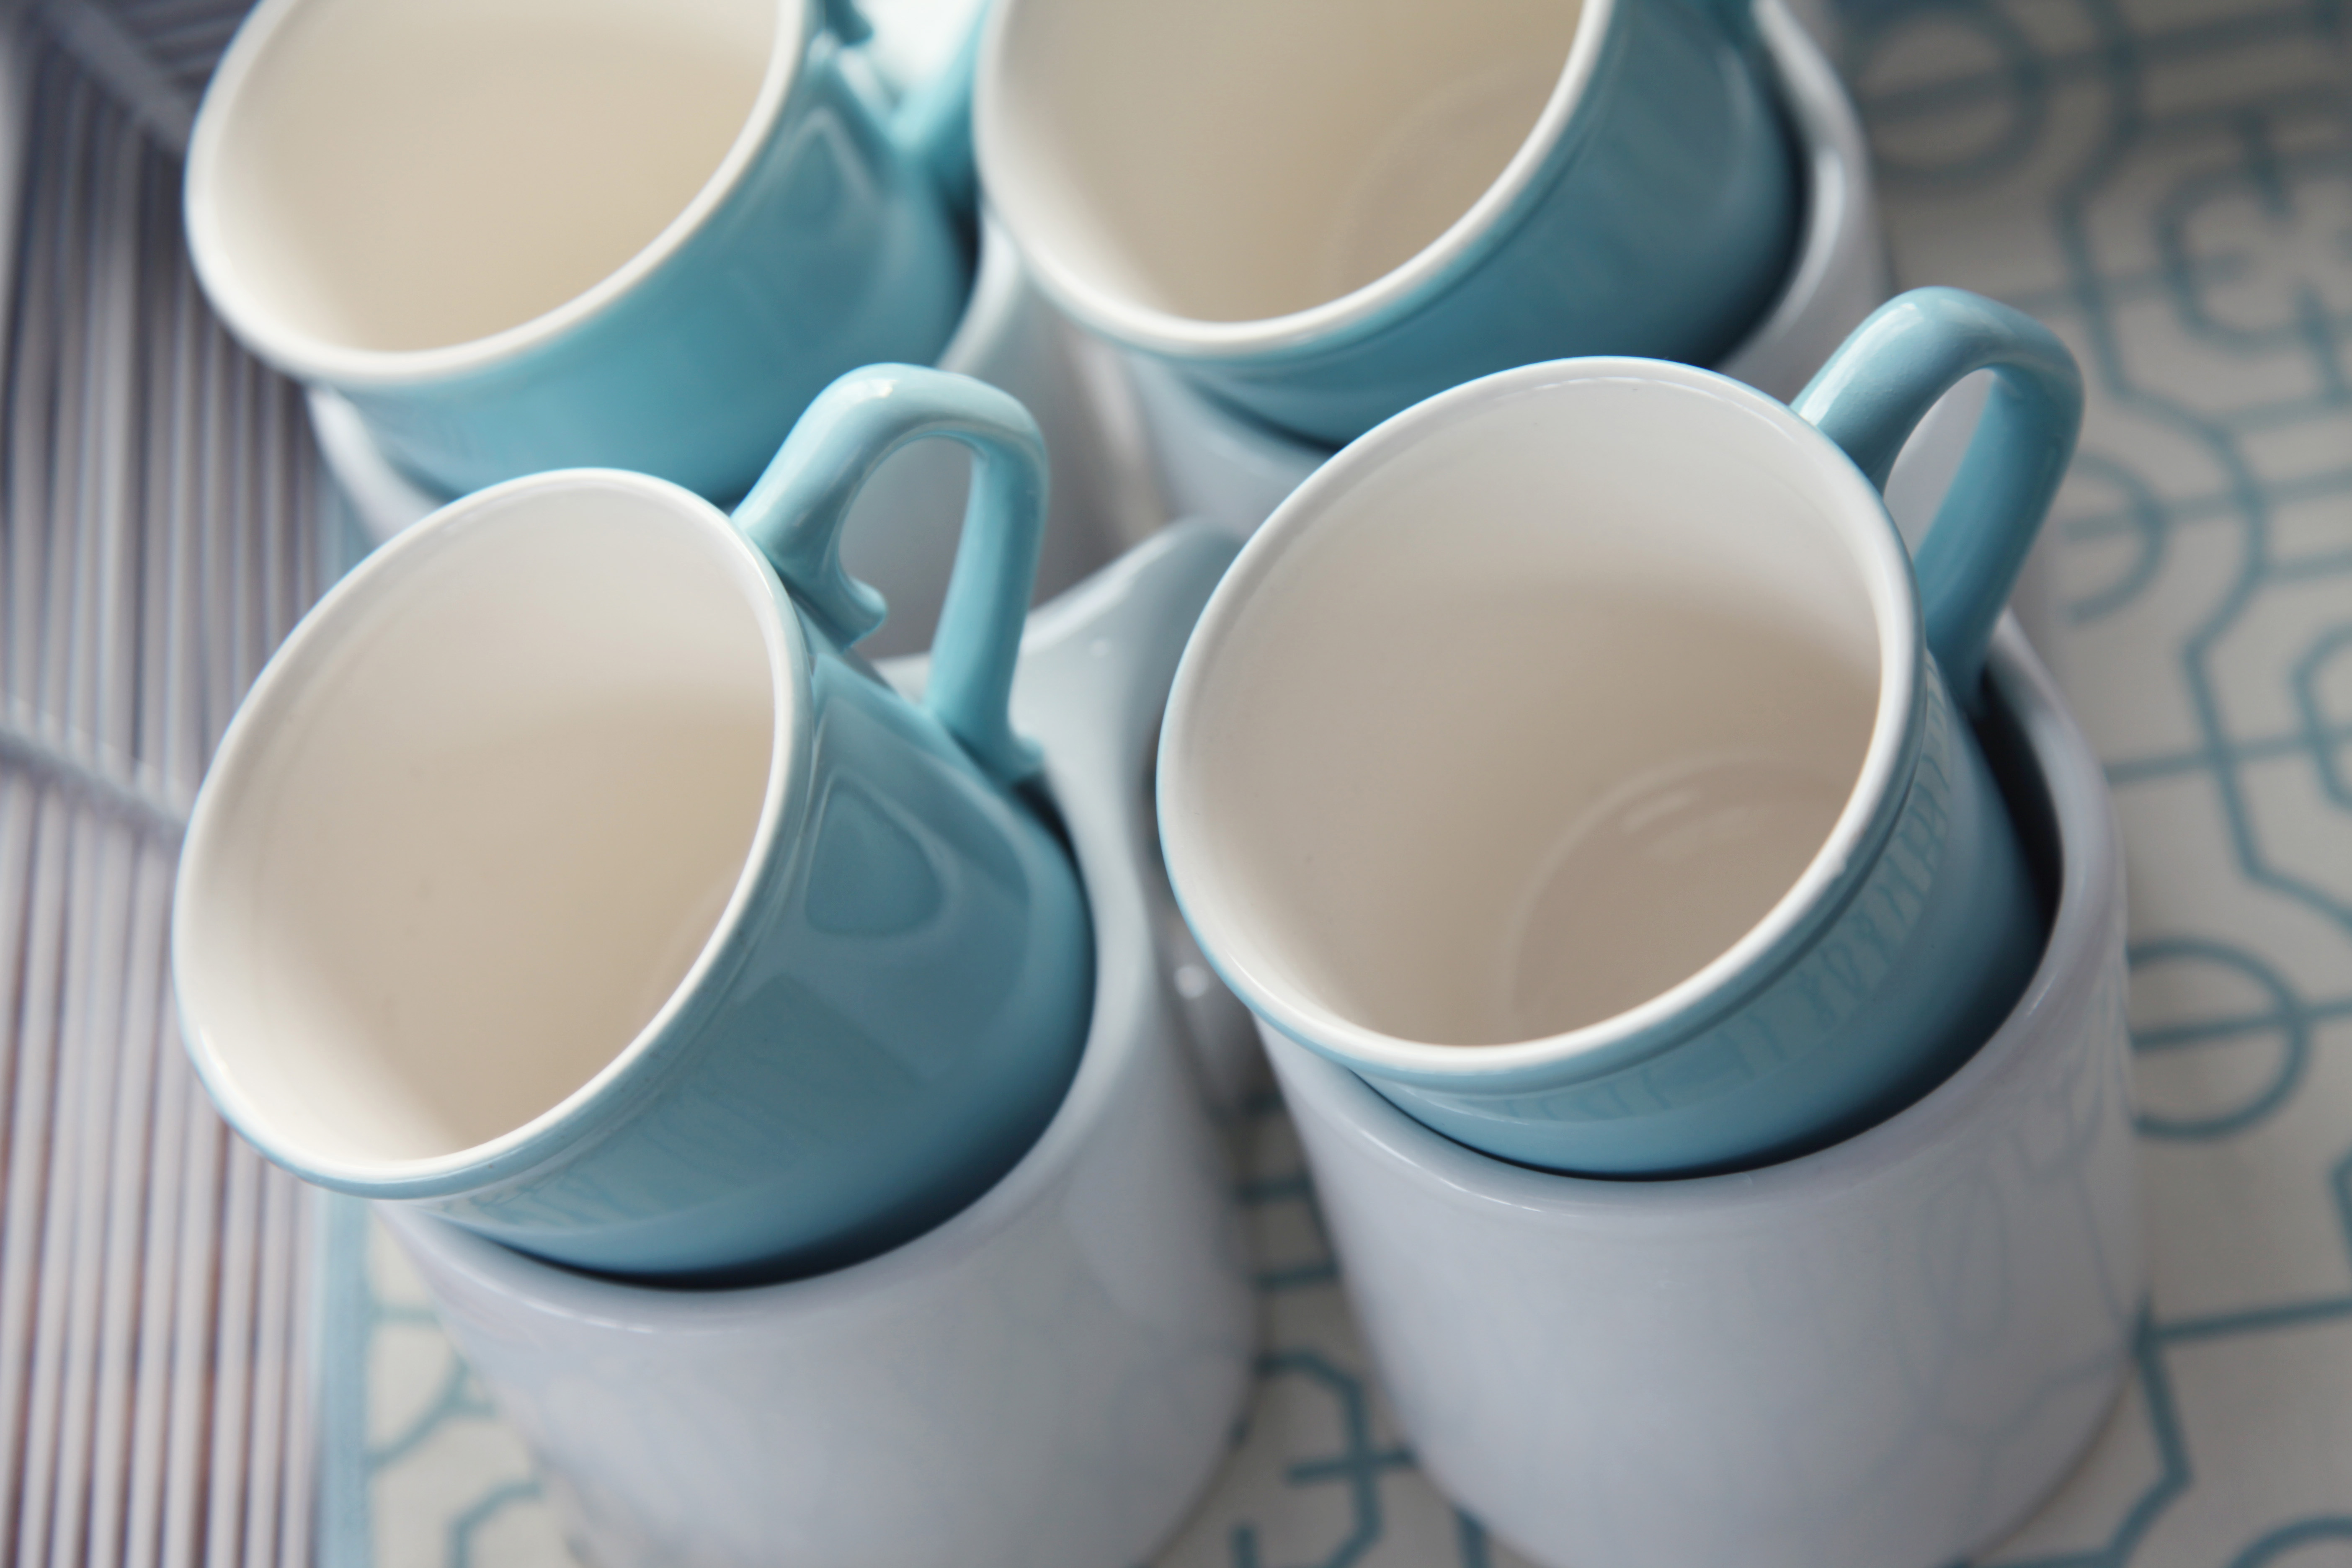 Tiffany Blue and White Coffee Mugs